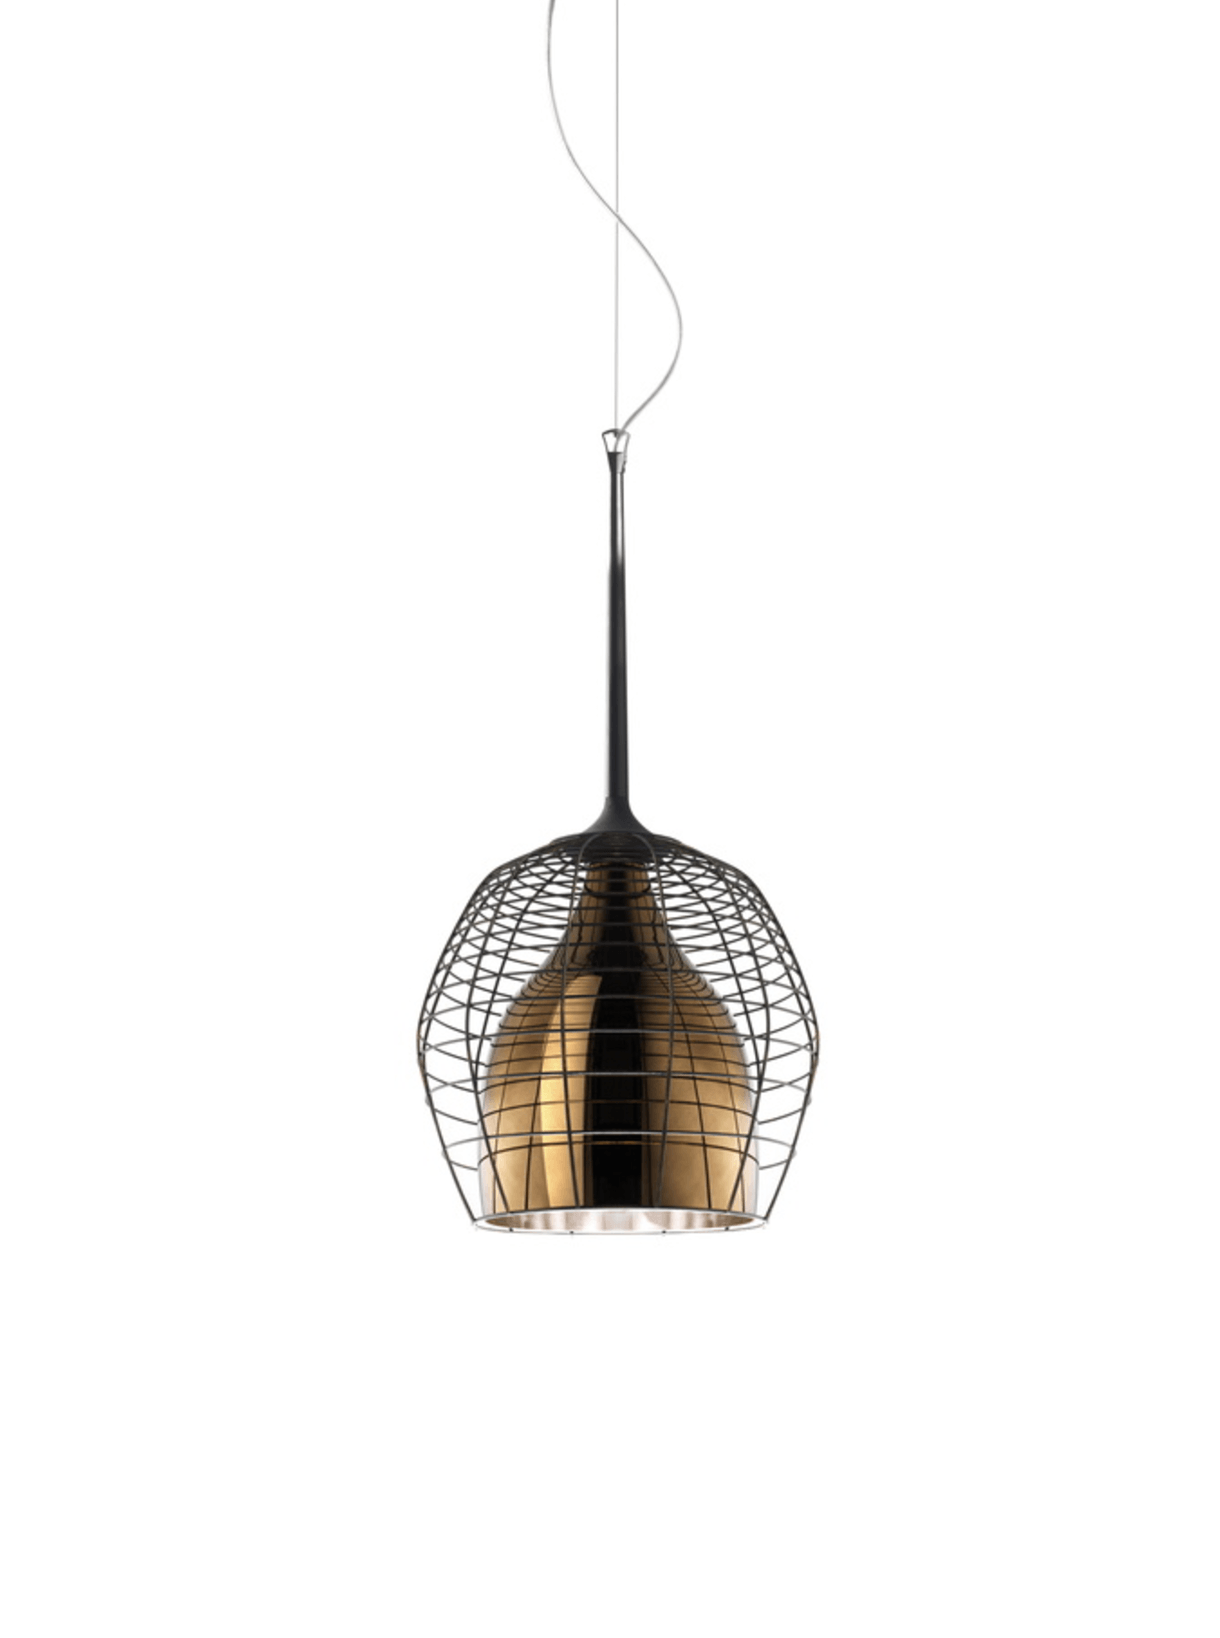 Diesel Cage Small Suspension Light - London Lighting - 1